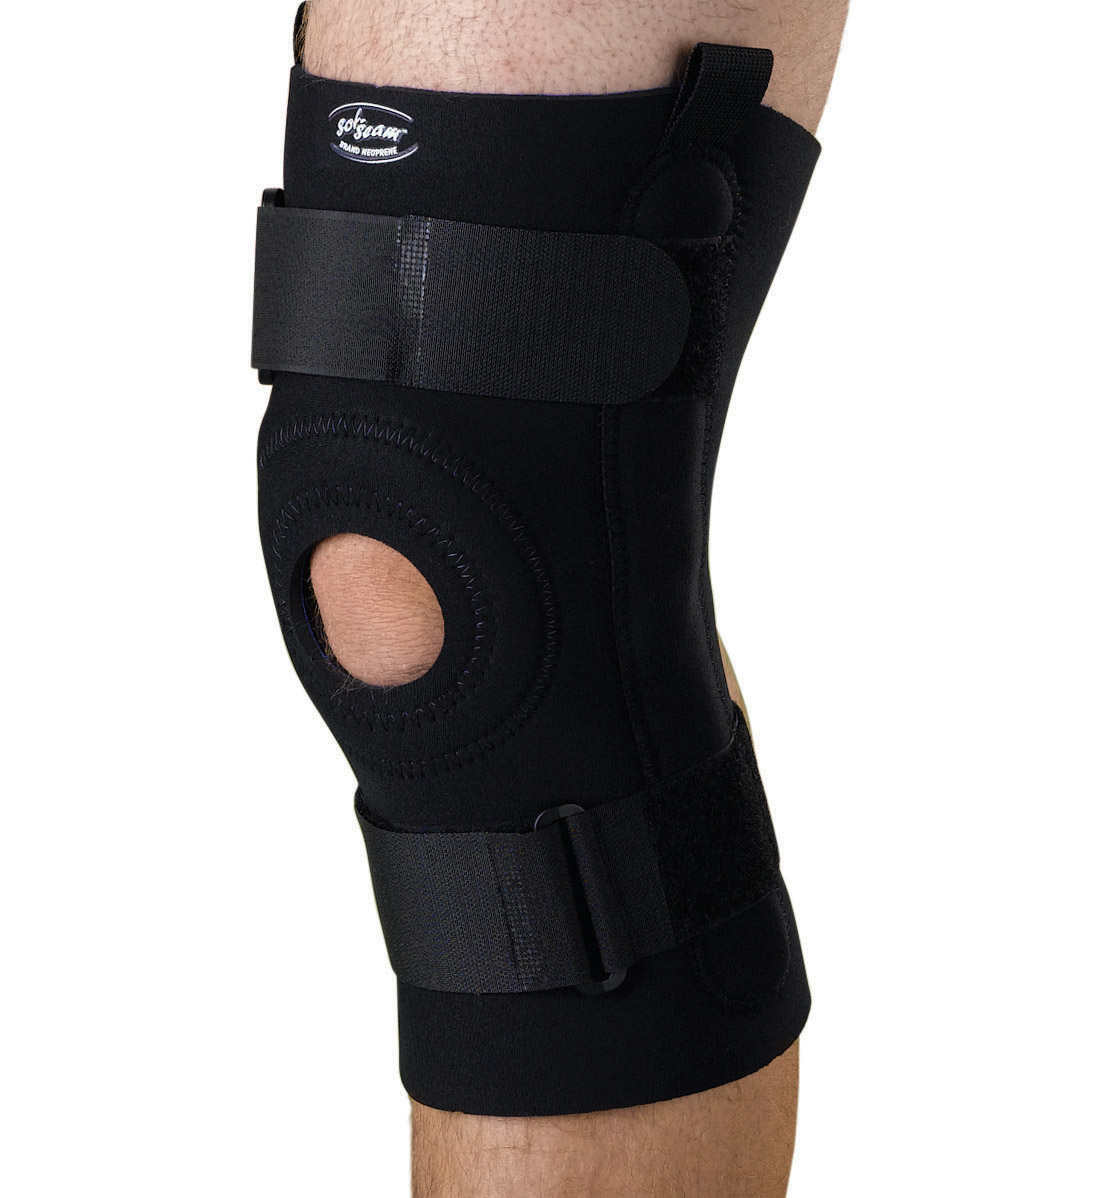 U-Shaped Hinged Knee Supports,Black